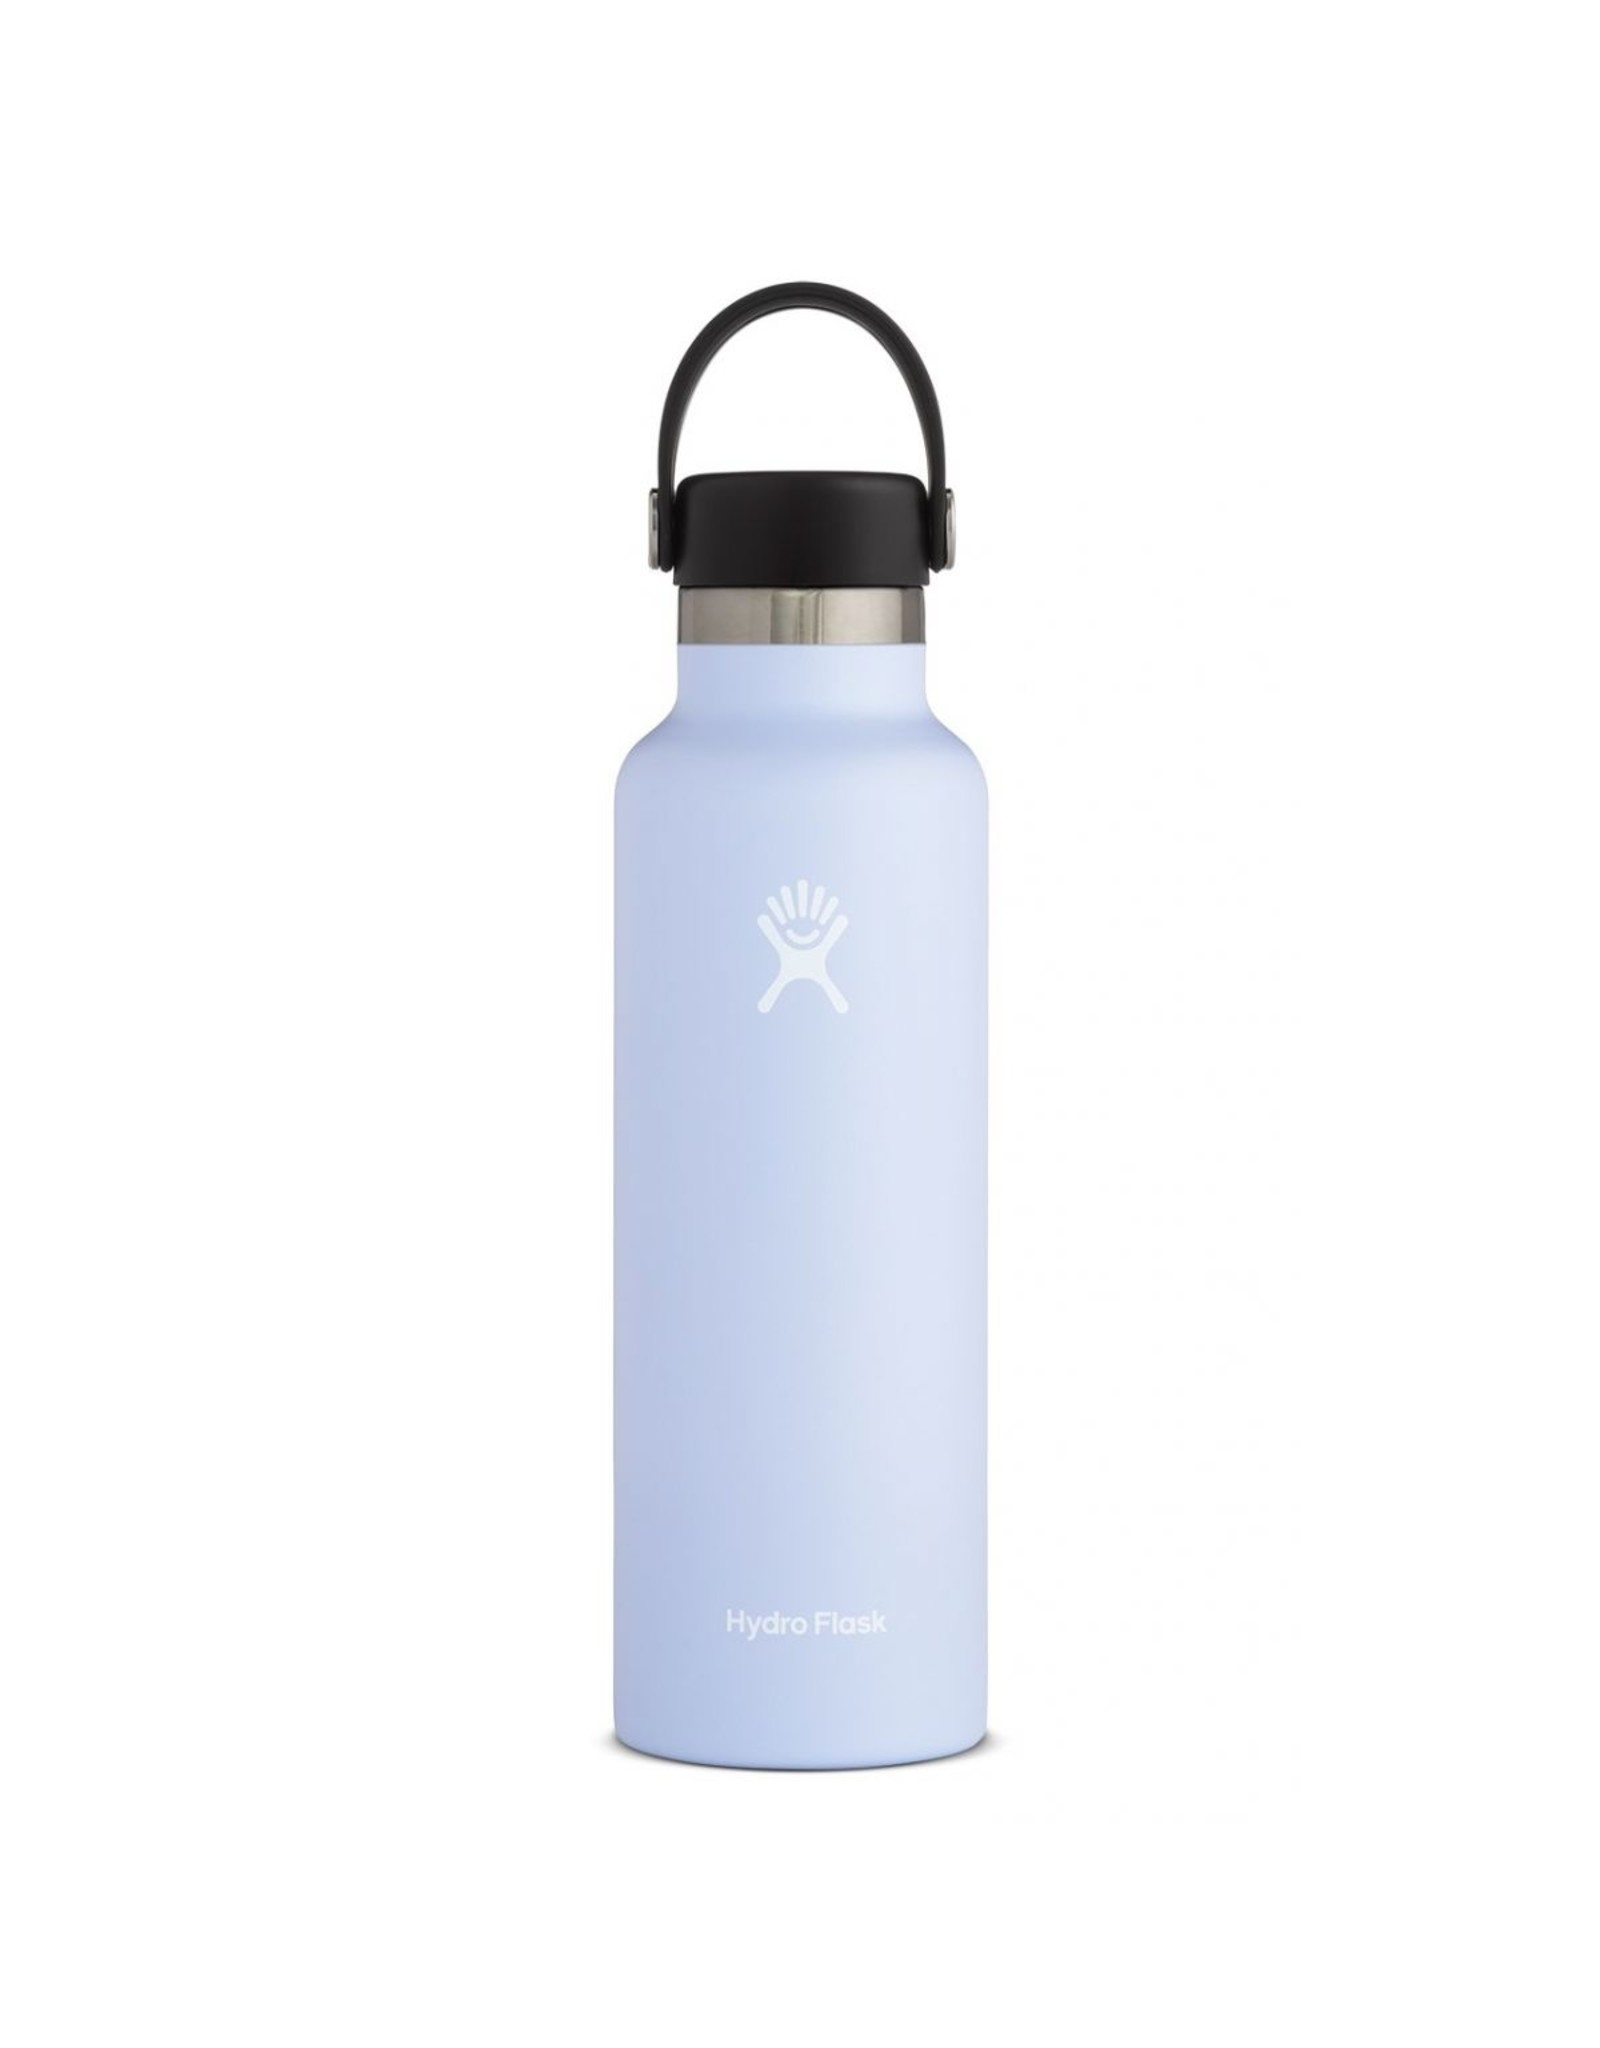 HYDRO FLASK 21OZ STANDARD MOUTH INSULATED BOTTLE